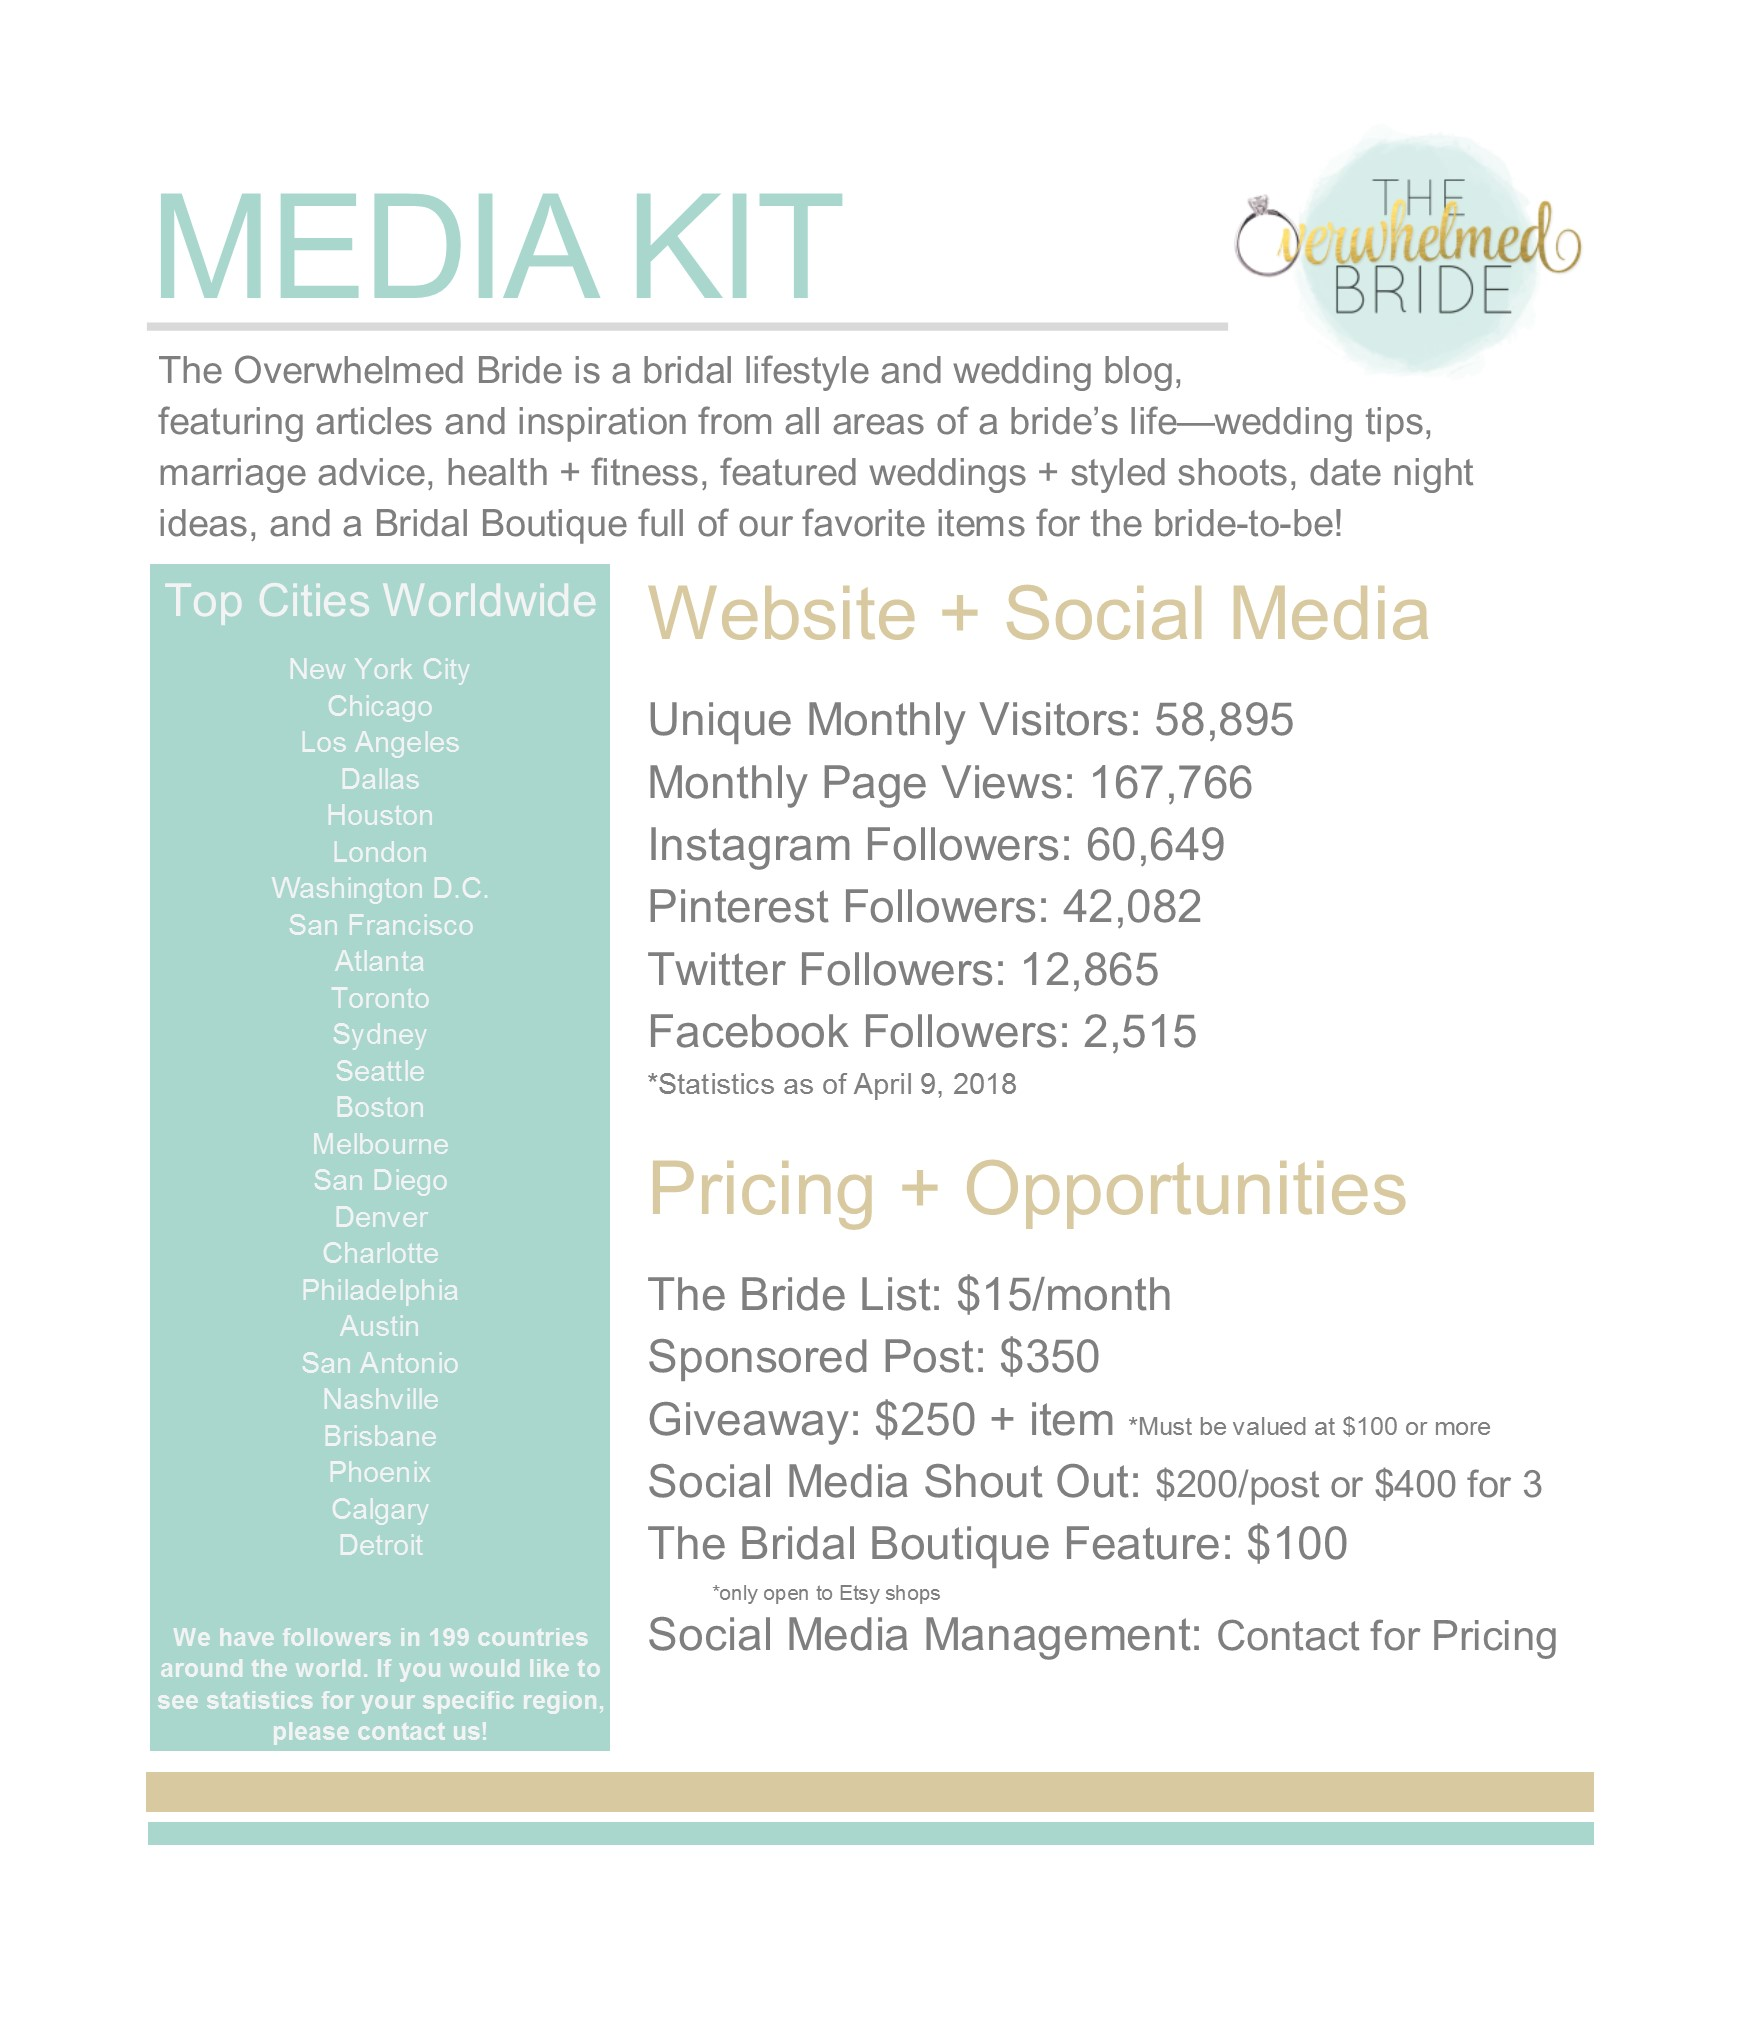 advertise your wedding business